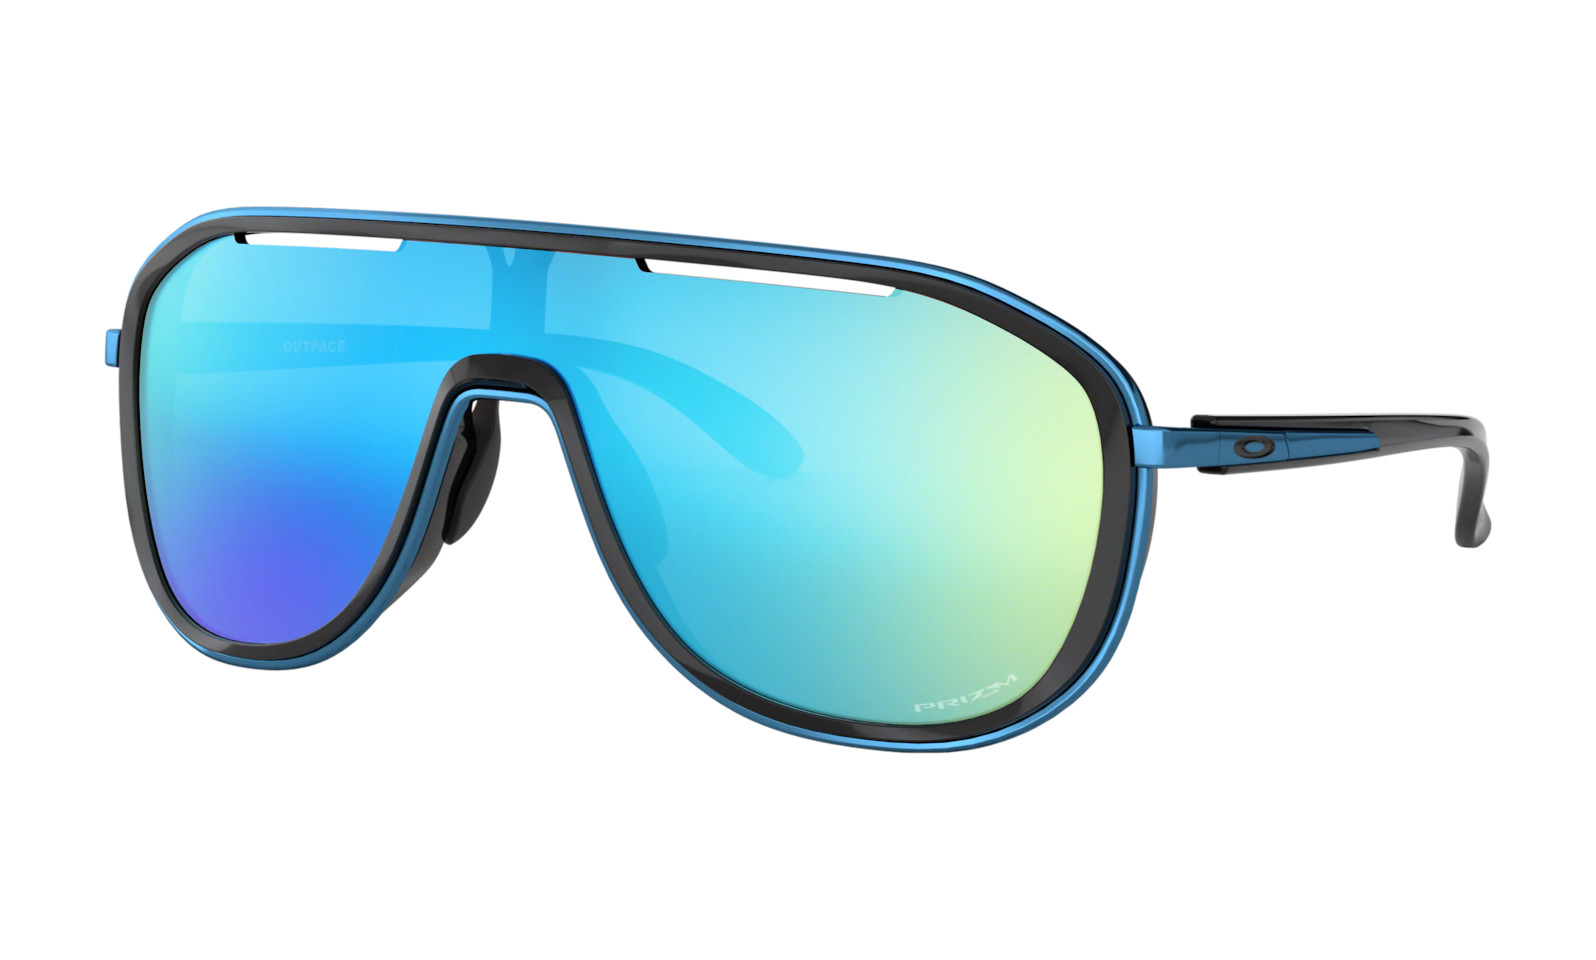 Oakley Outpace Women's - Polished Black frame with Prizm Sapphire lens